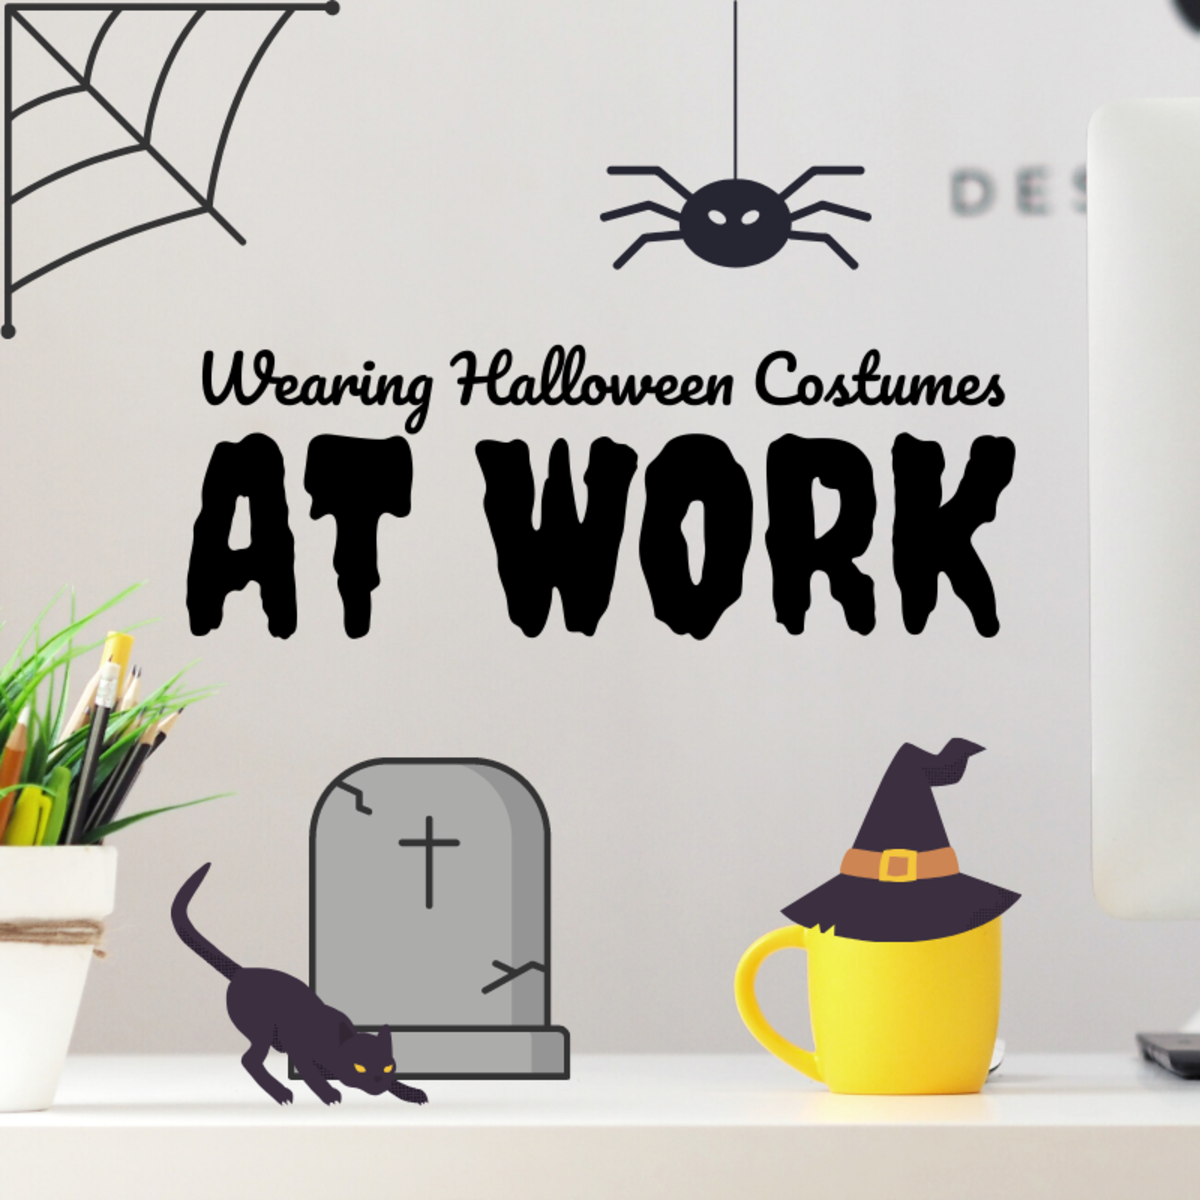 Tips and Guidelines for Wearing a Halloween Costume to Work